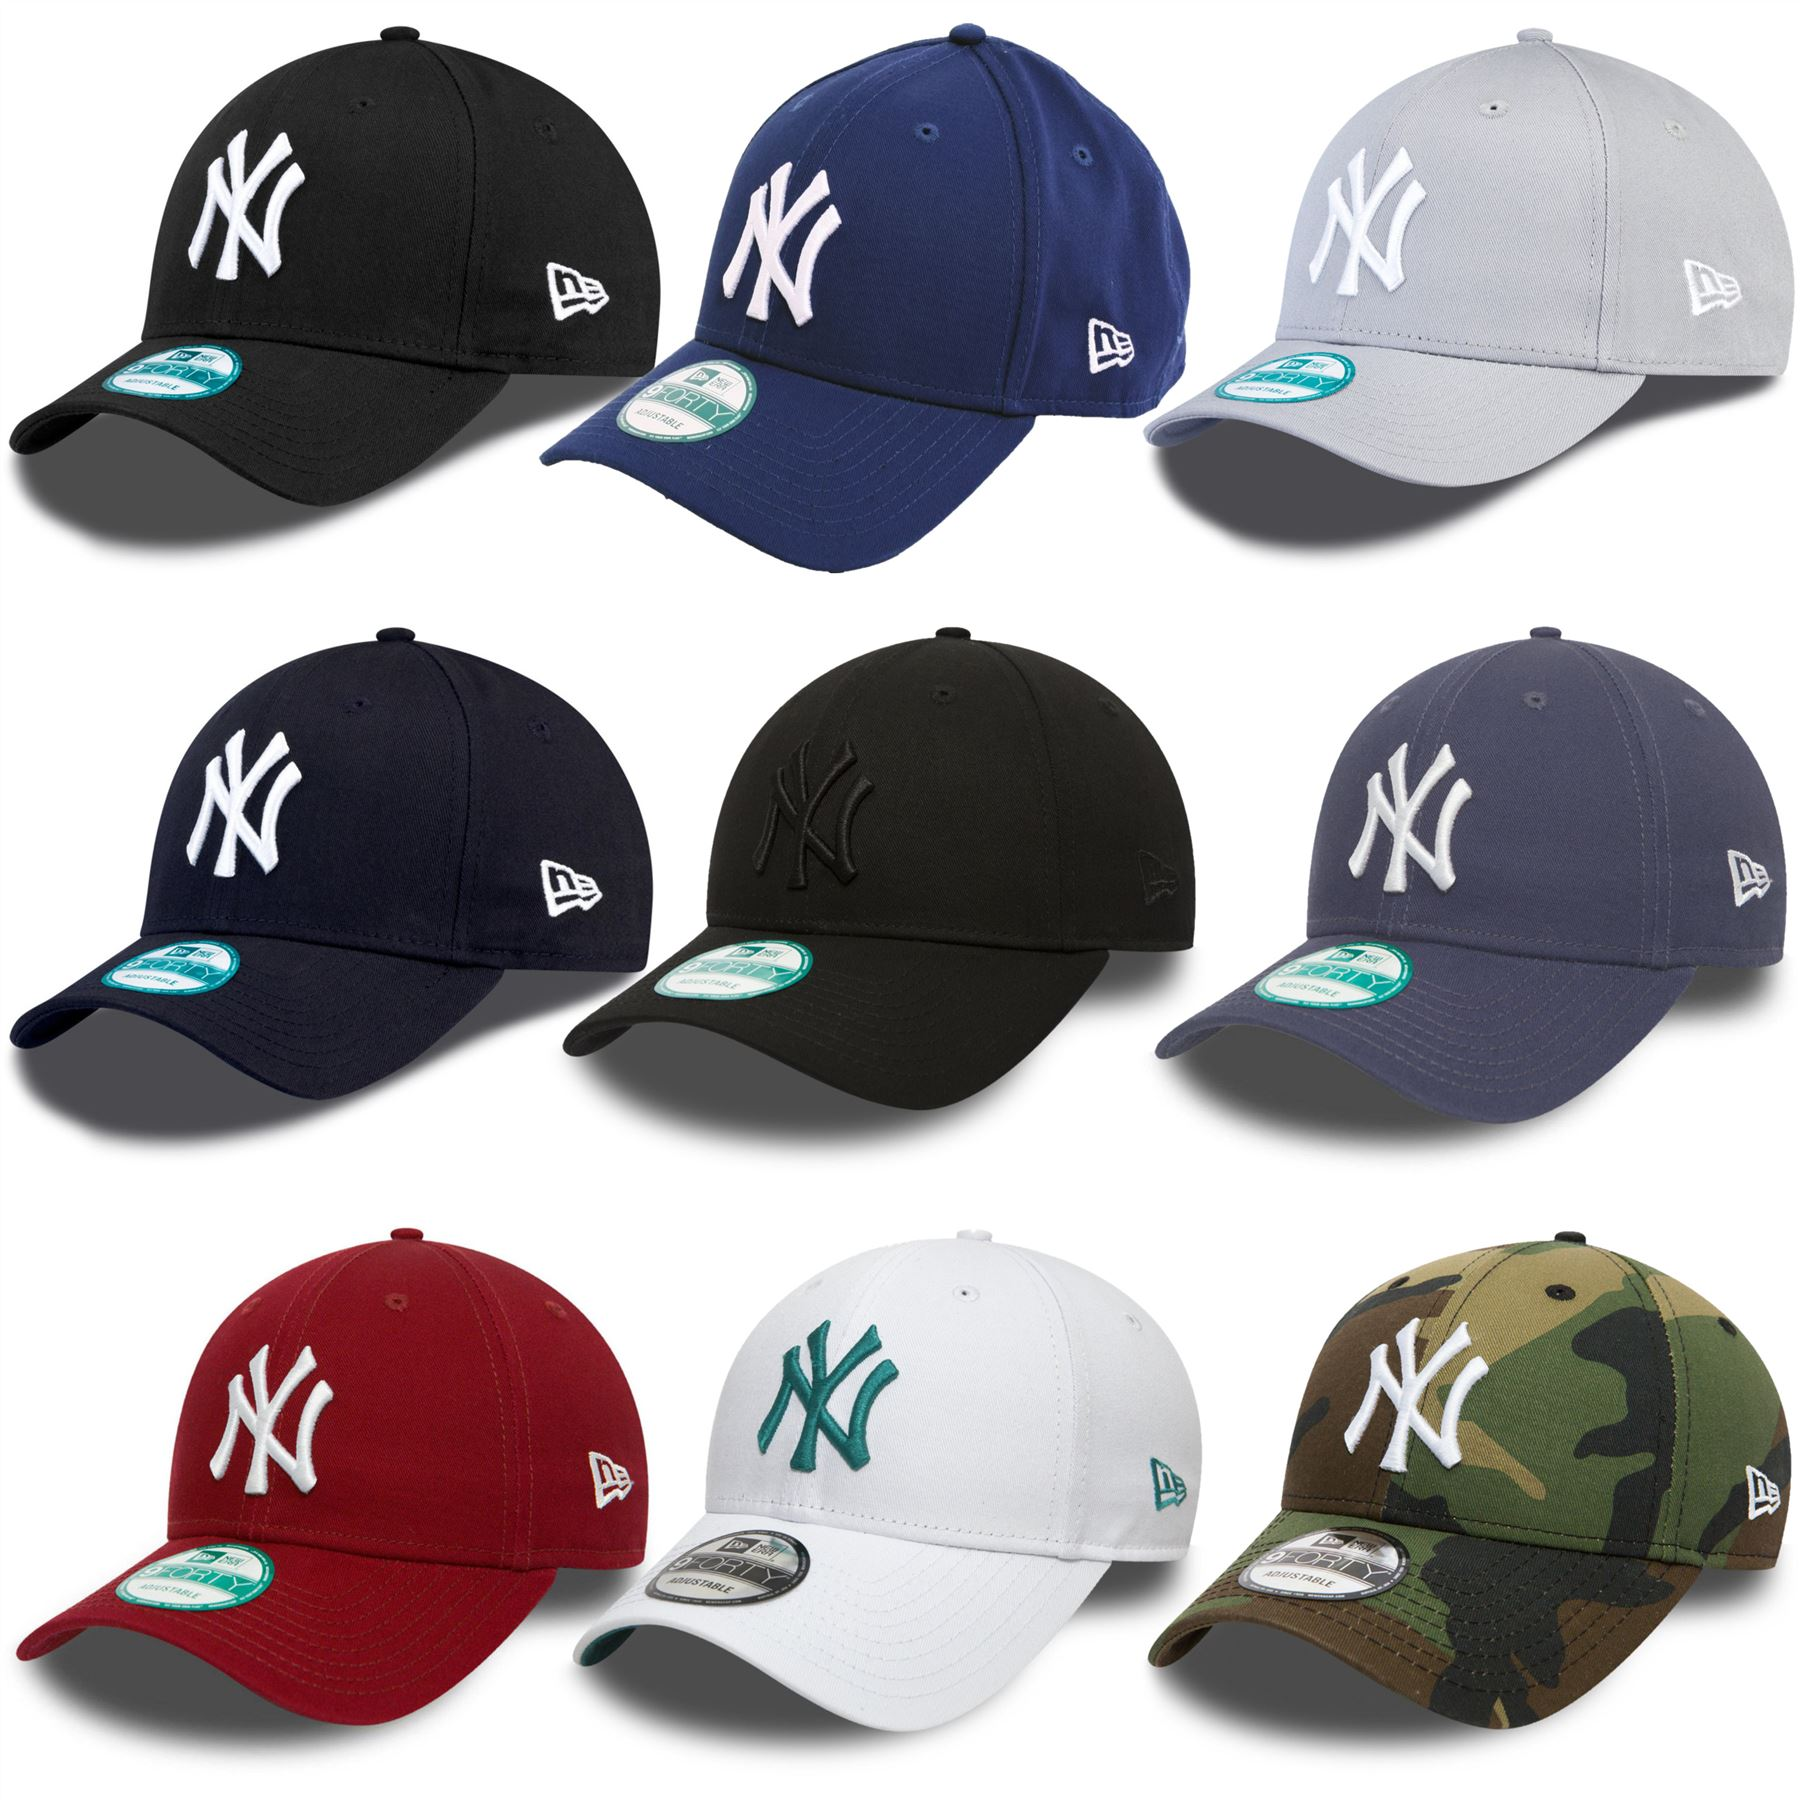 693b1f3cef9 Details about New Era 9FORTY New York Yankees Adjustable Baseball Cap -  Black